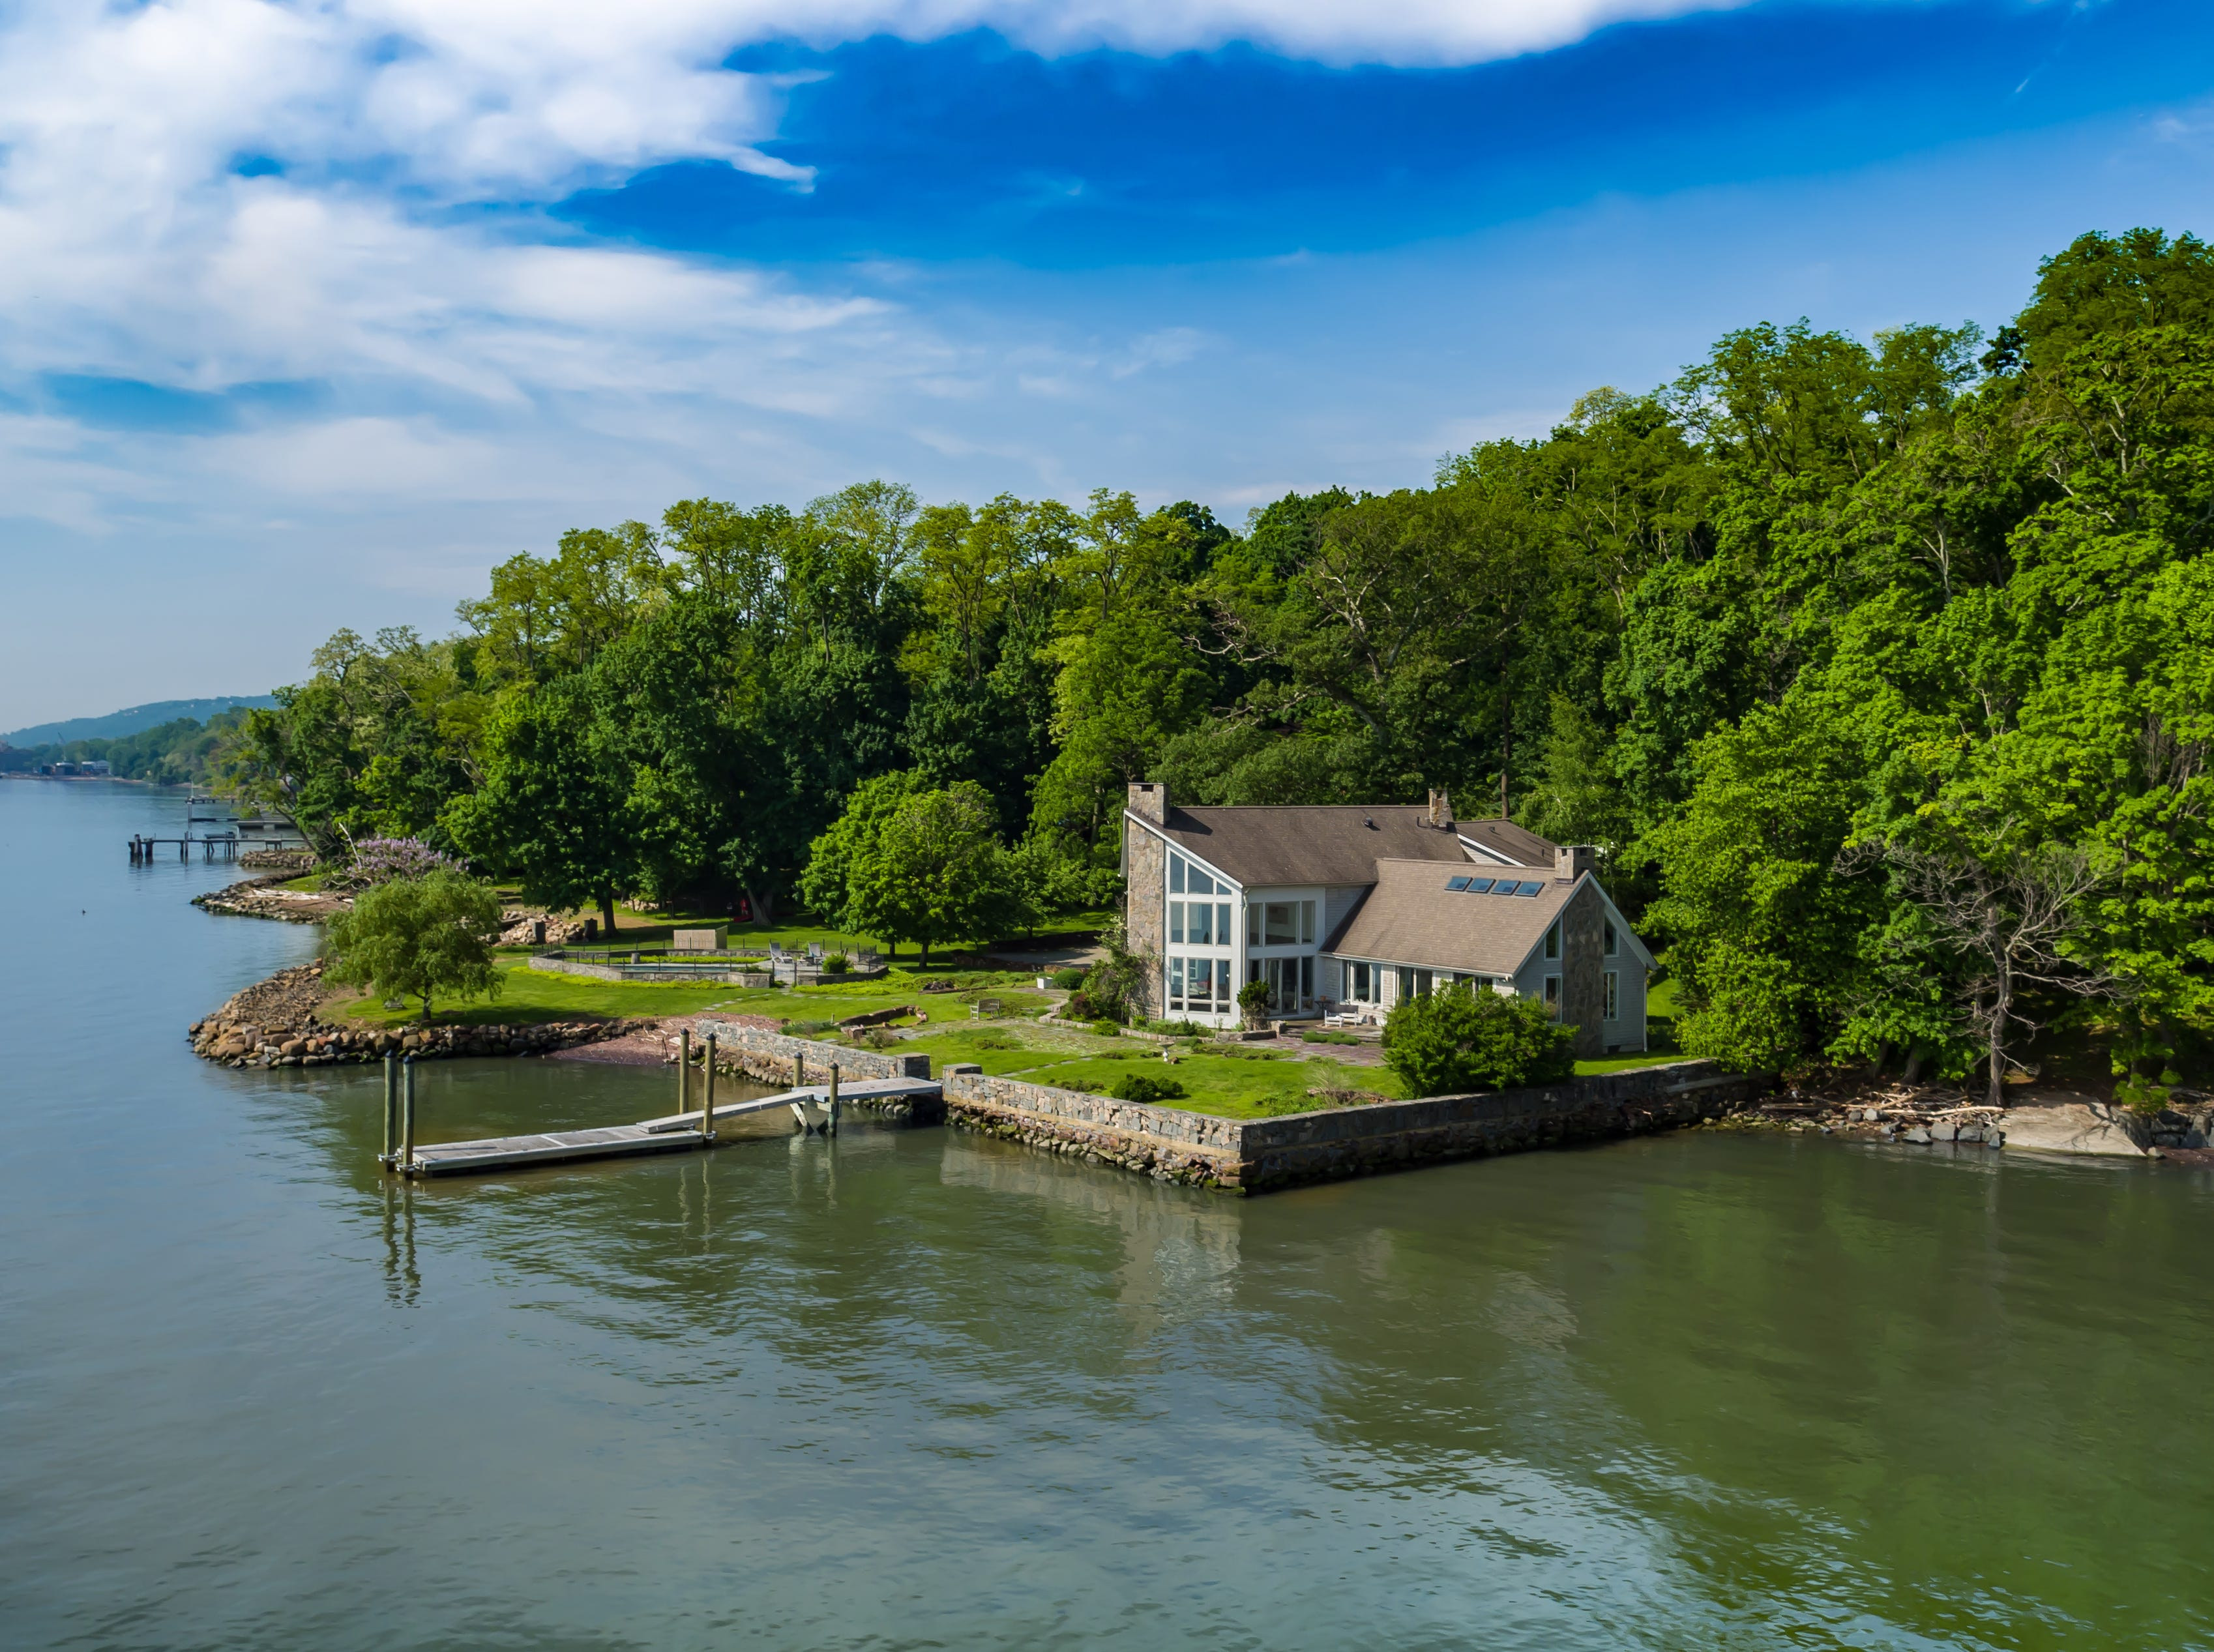 Upper Nyack riverfront estate highest priced sale in Rockland since 2013